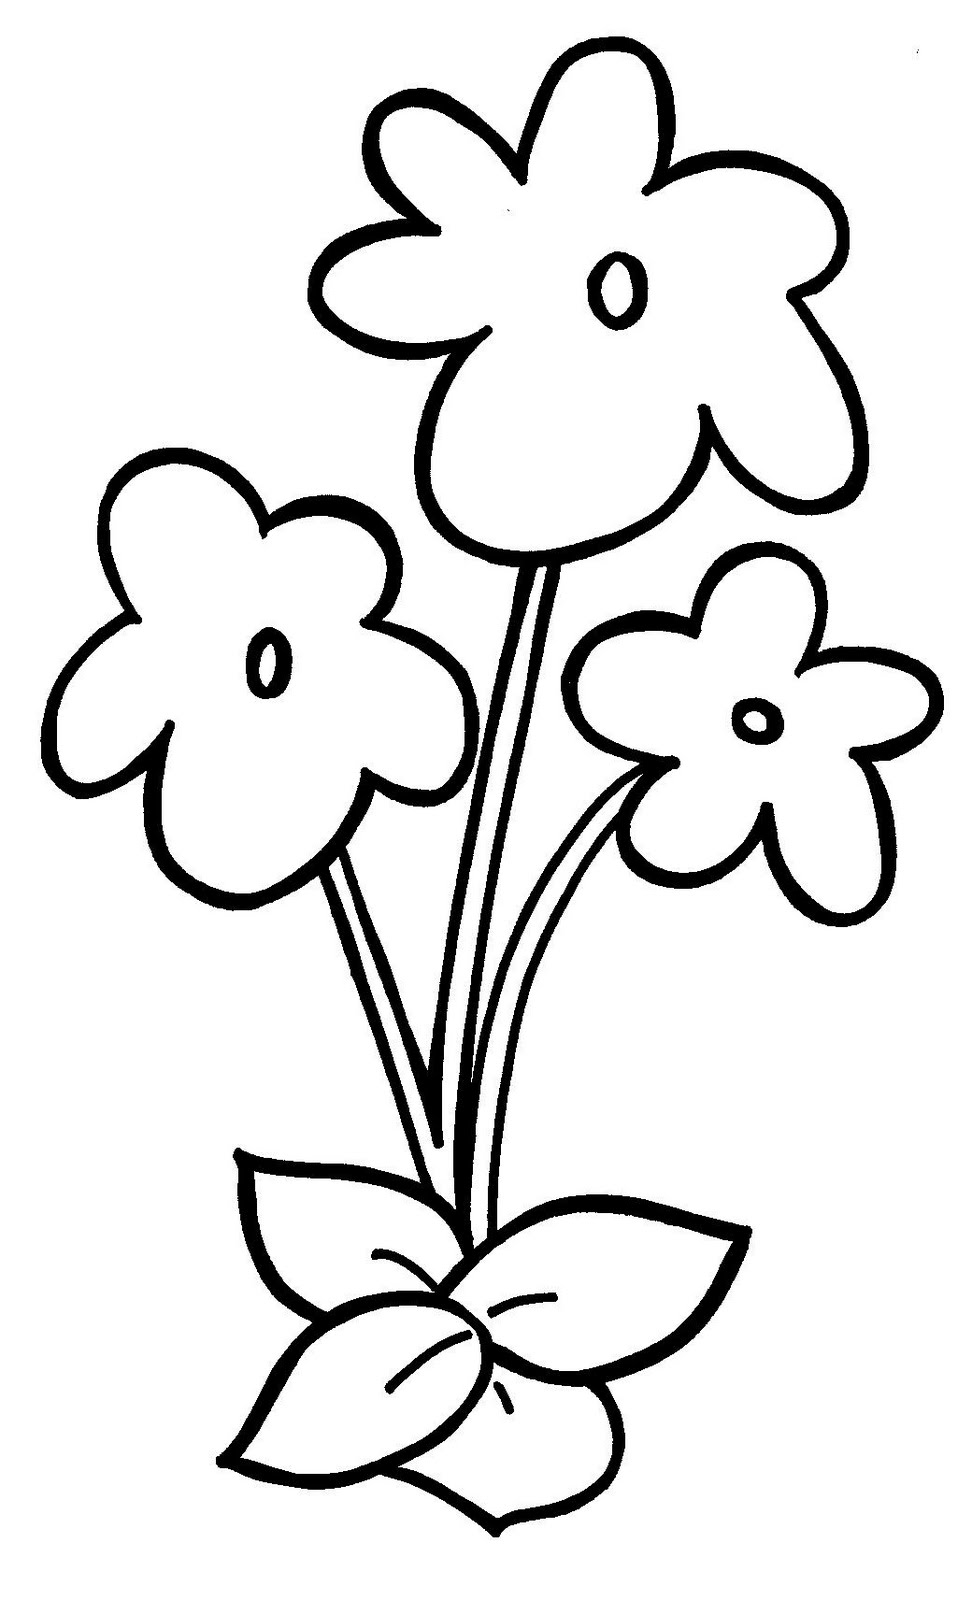 Blank flower images clipart best for Blank flower coloring pages